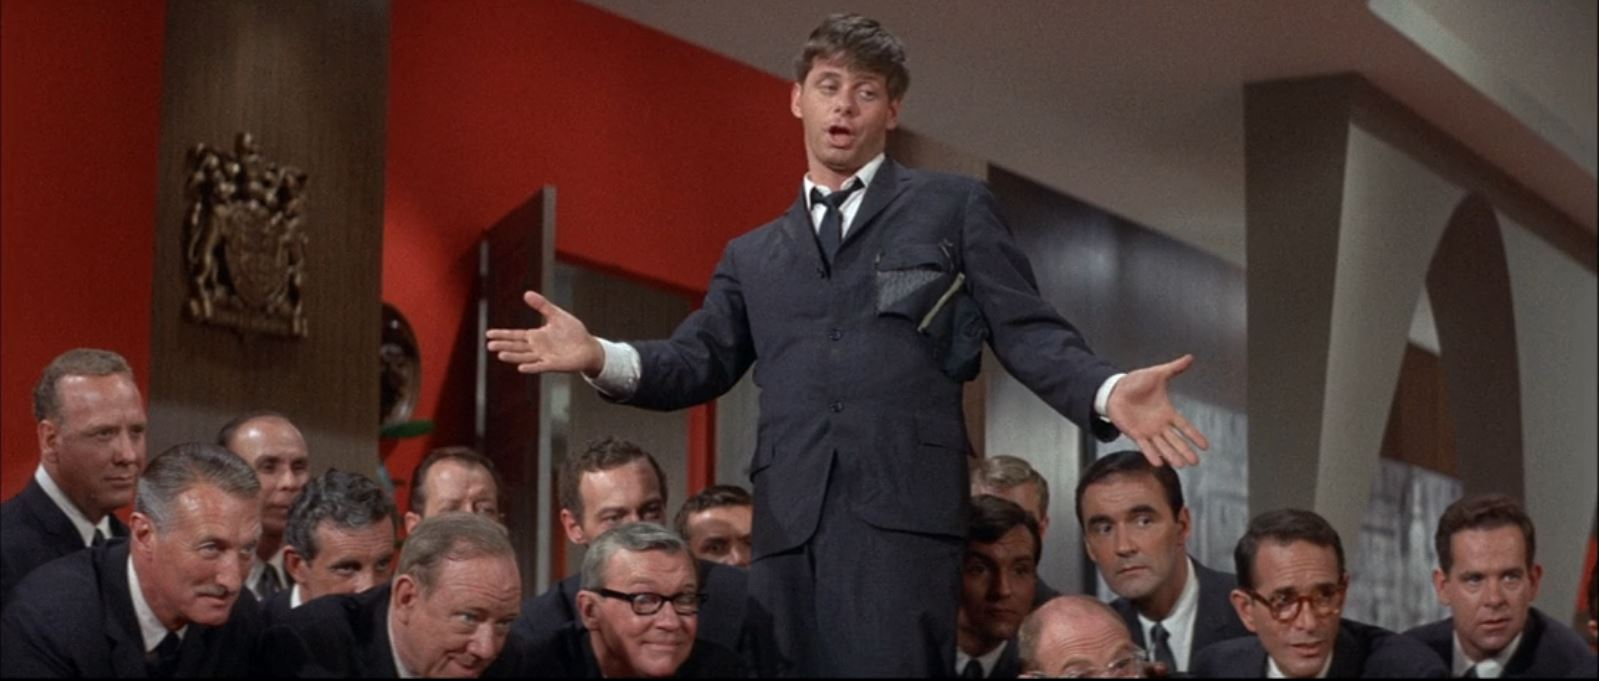 How to Succeed in Business Without Really Trying (1967) - Movie Review -  SCARED STIFF REVIEWS